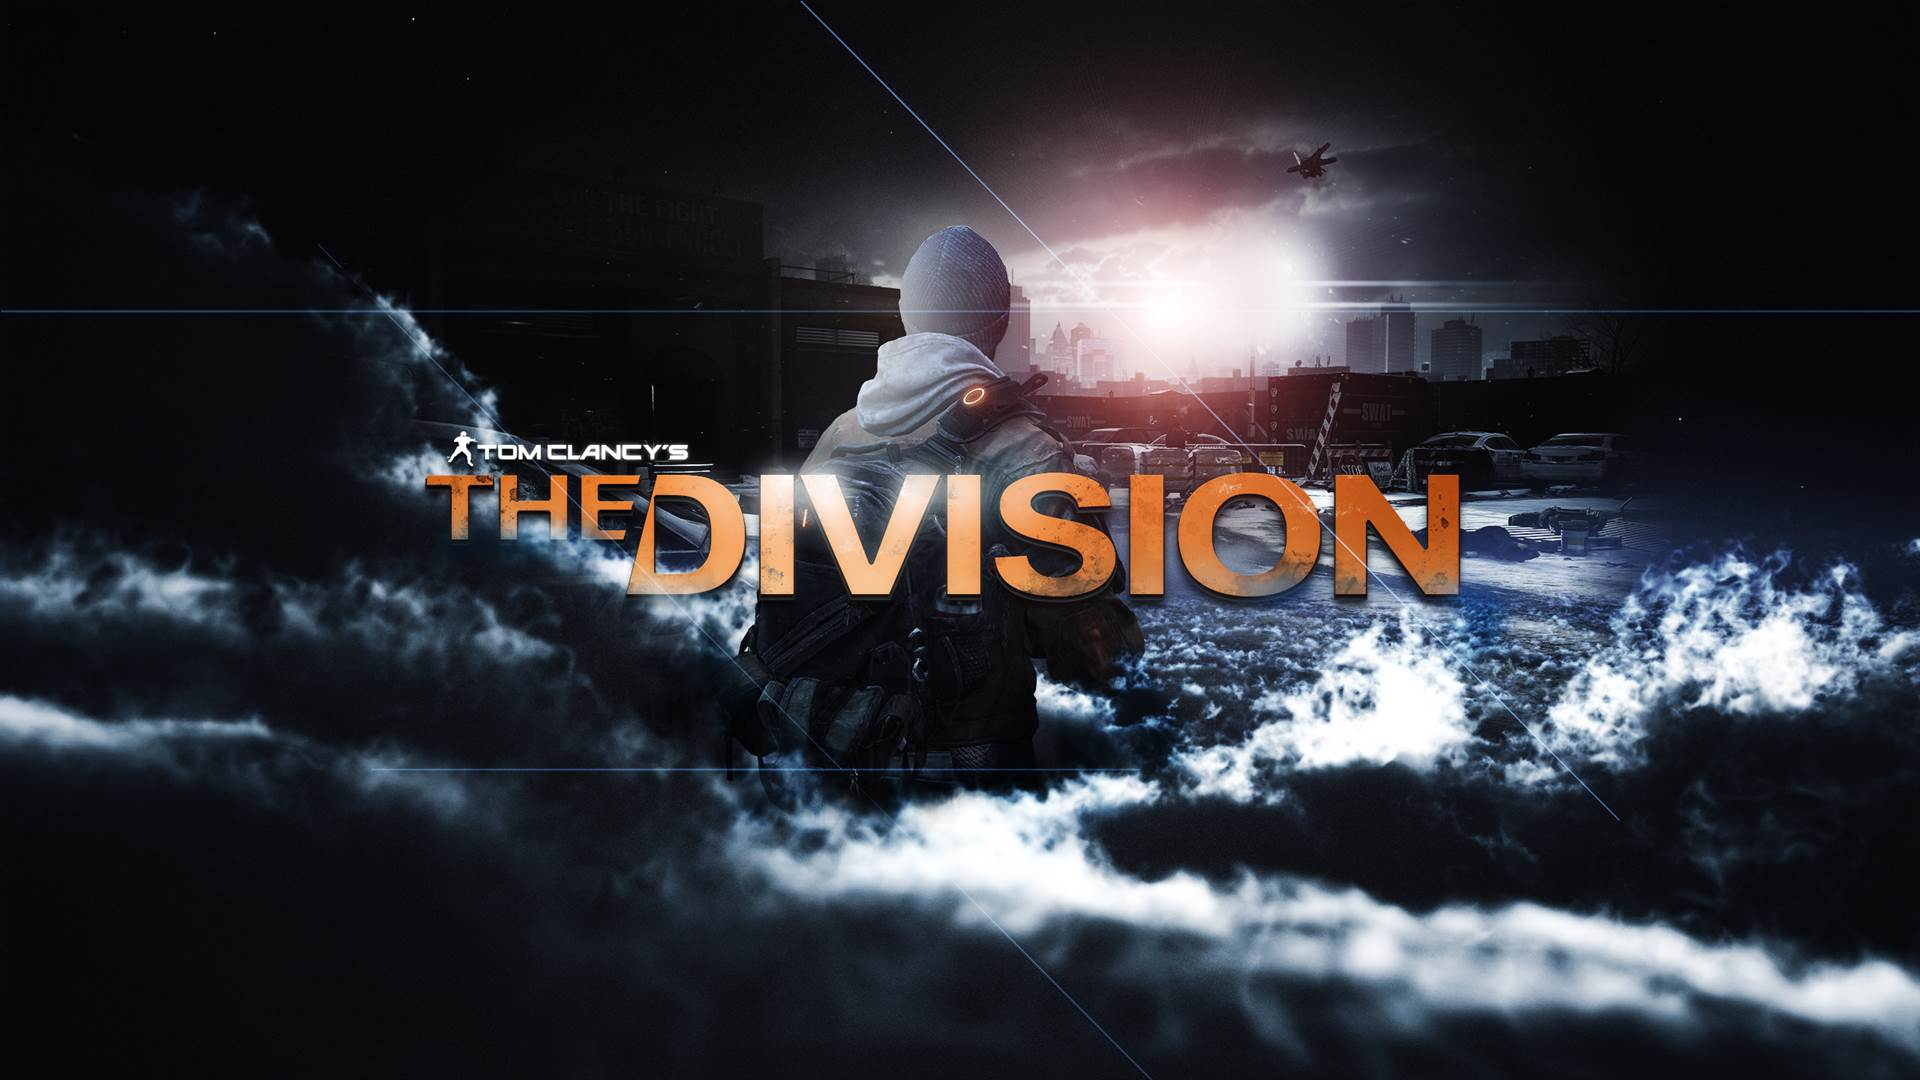 Tom Clancys The Division Wallpapers in 1080P HD 1920x1080